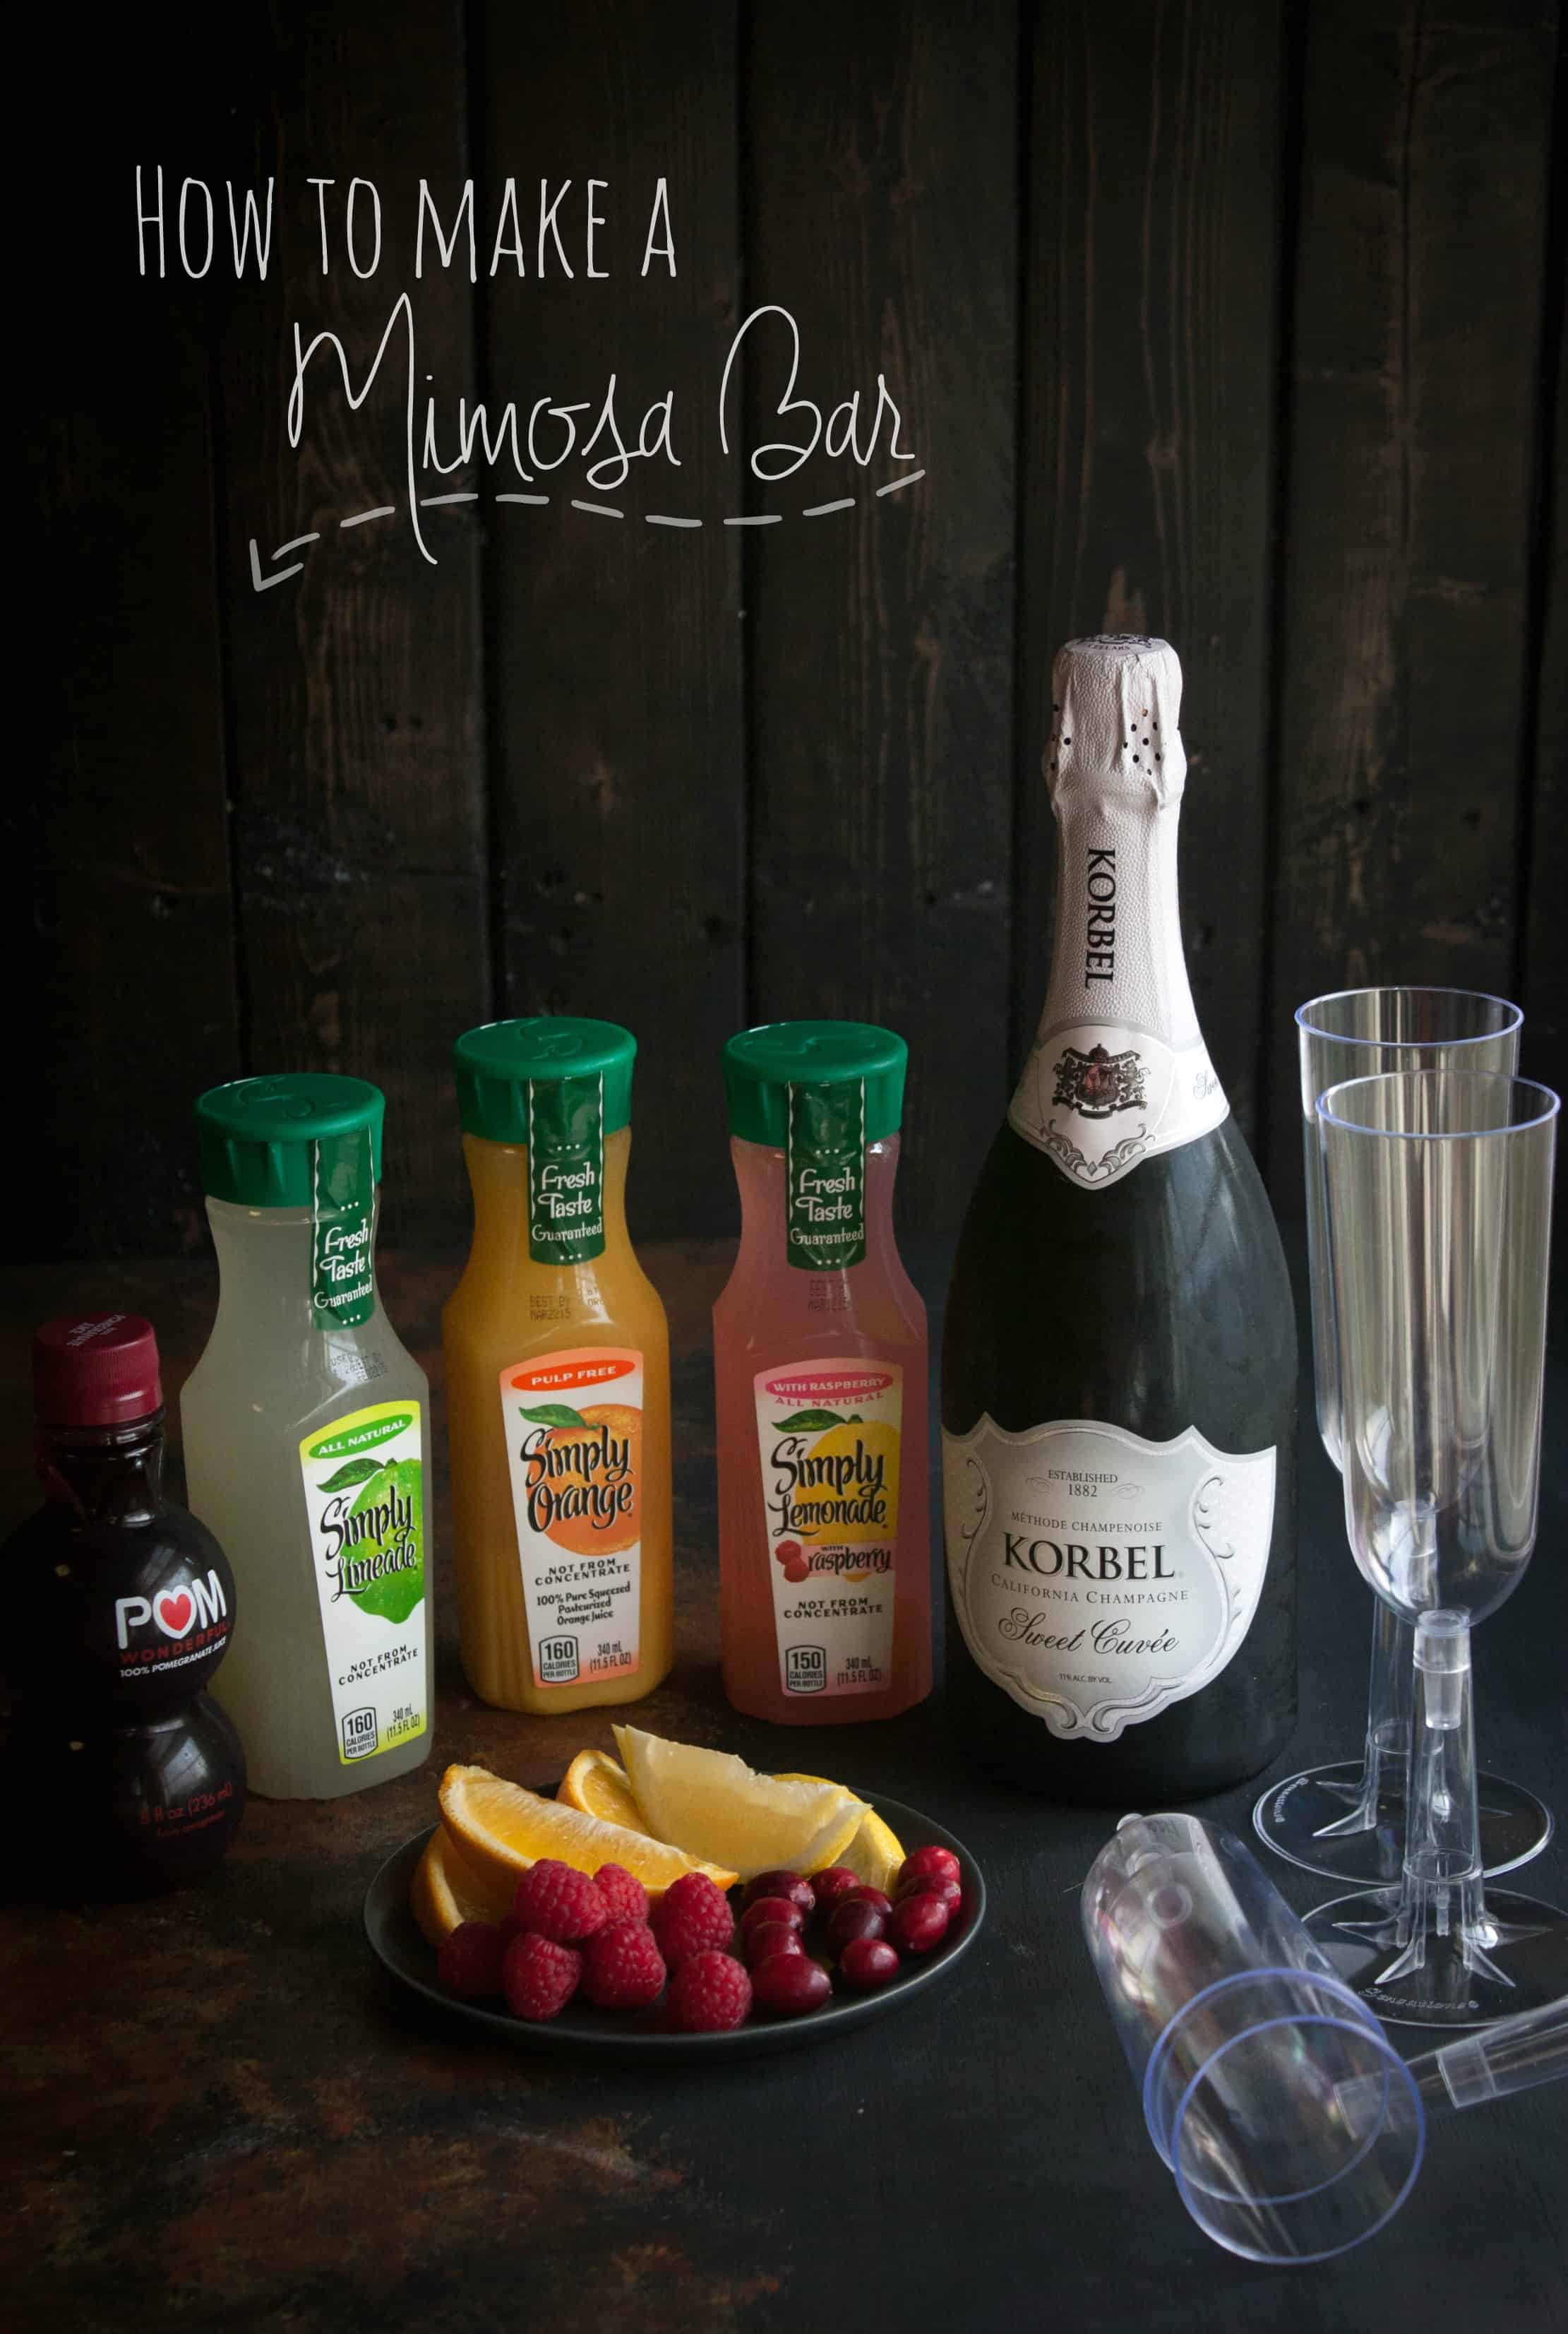 How to make a mimosa bar from @sweetphi , how to set up a mimosa bar, the perfect mimosa bar